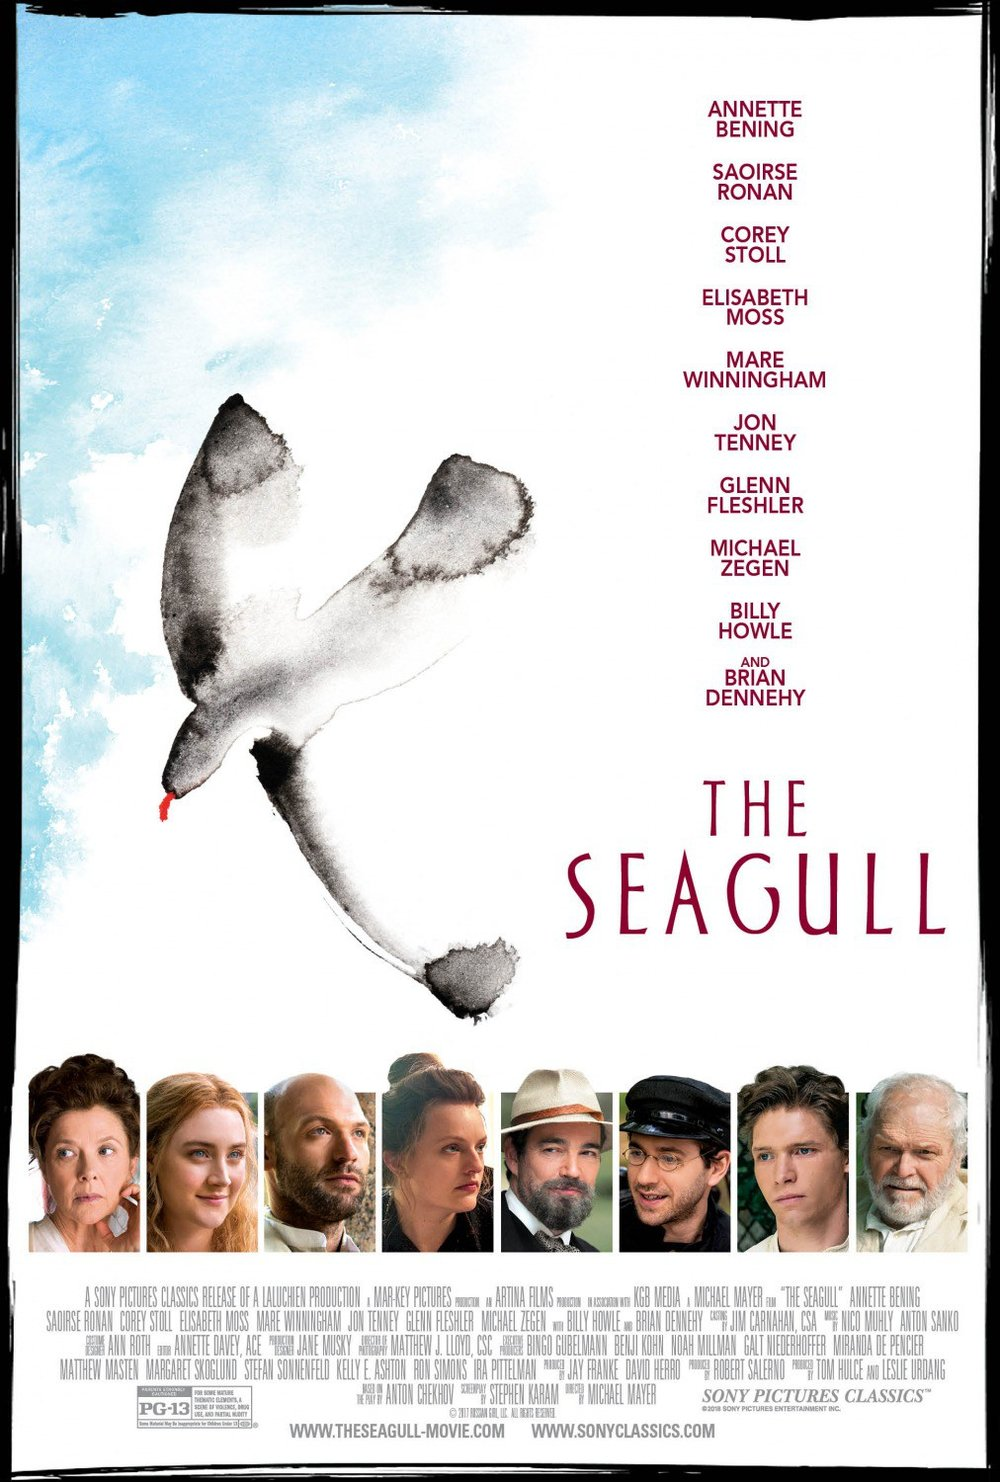 The-Seagull-movie-poster.jpg